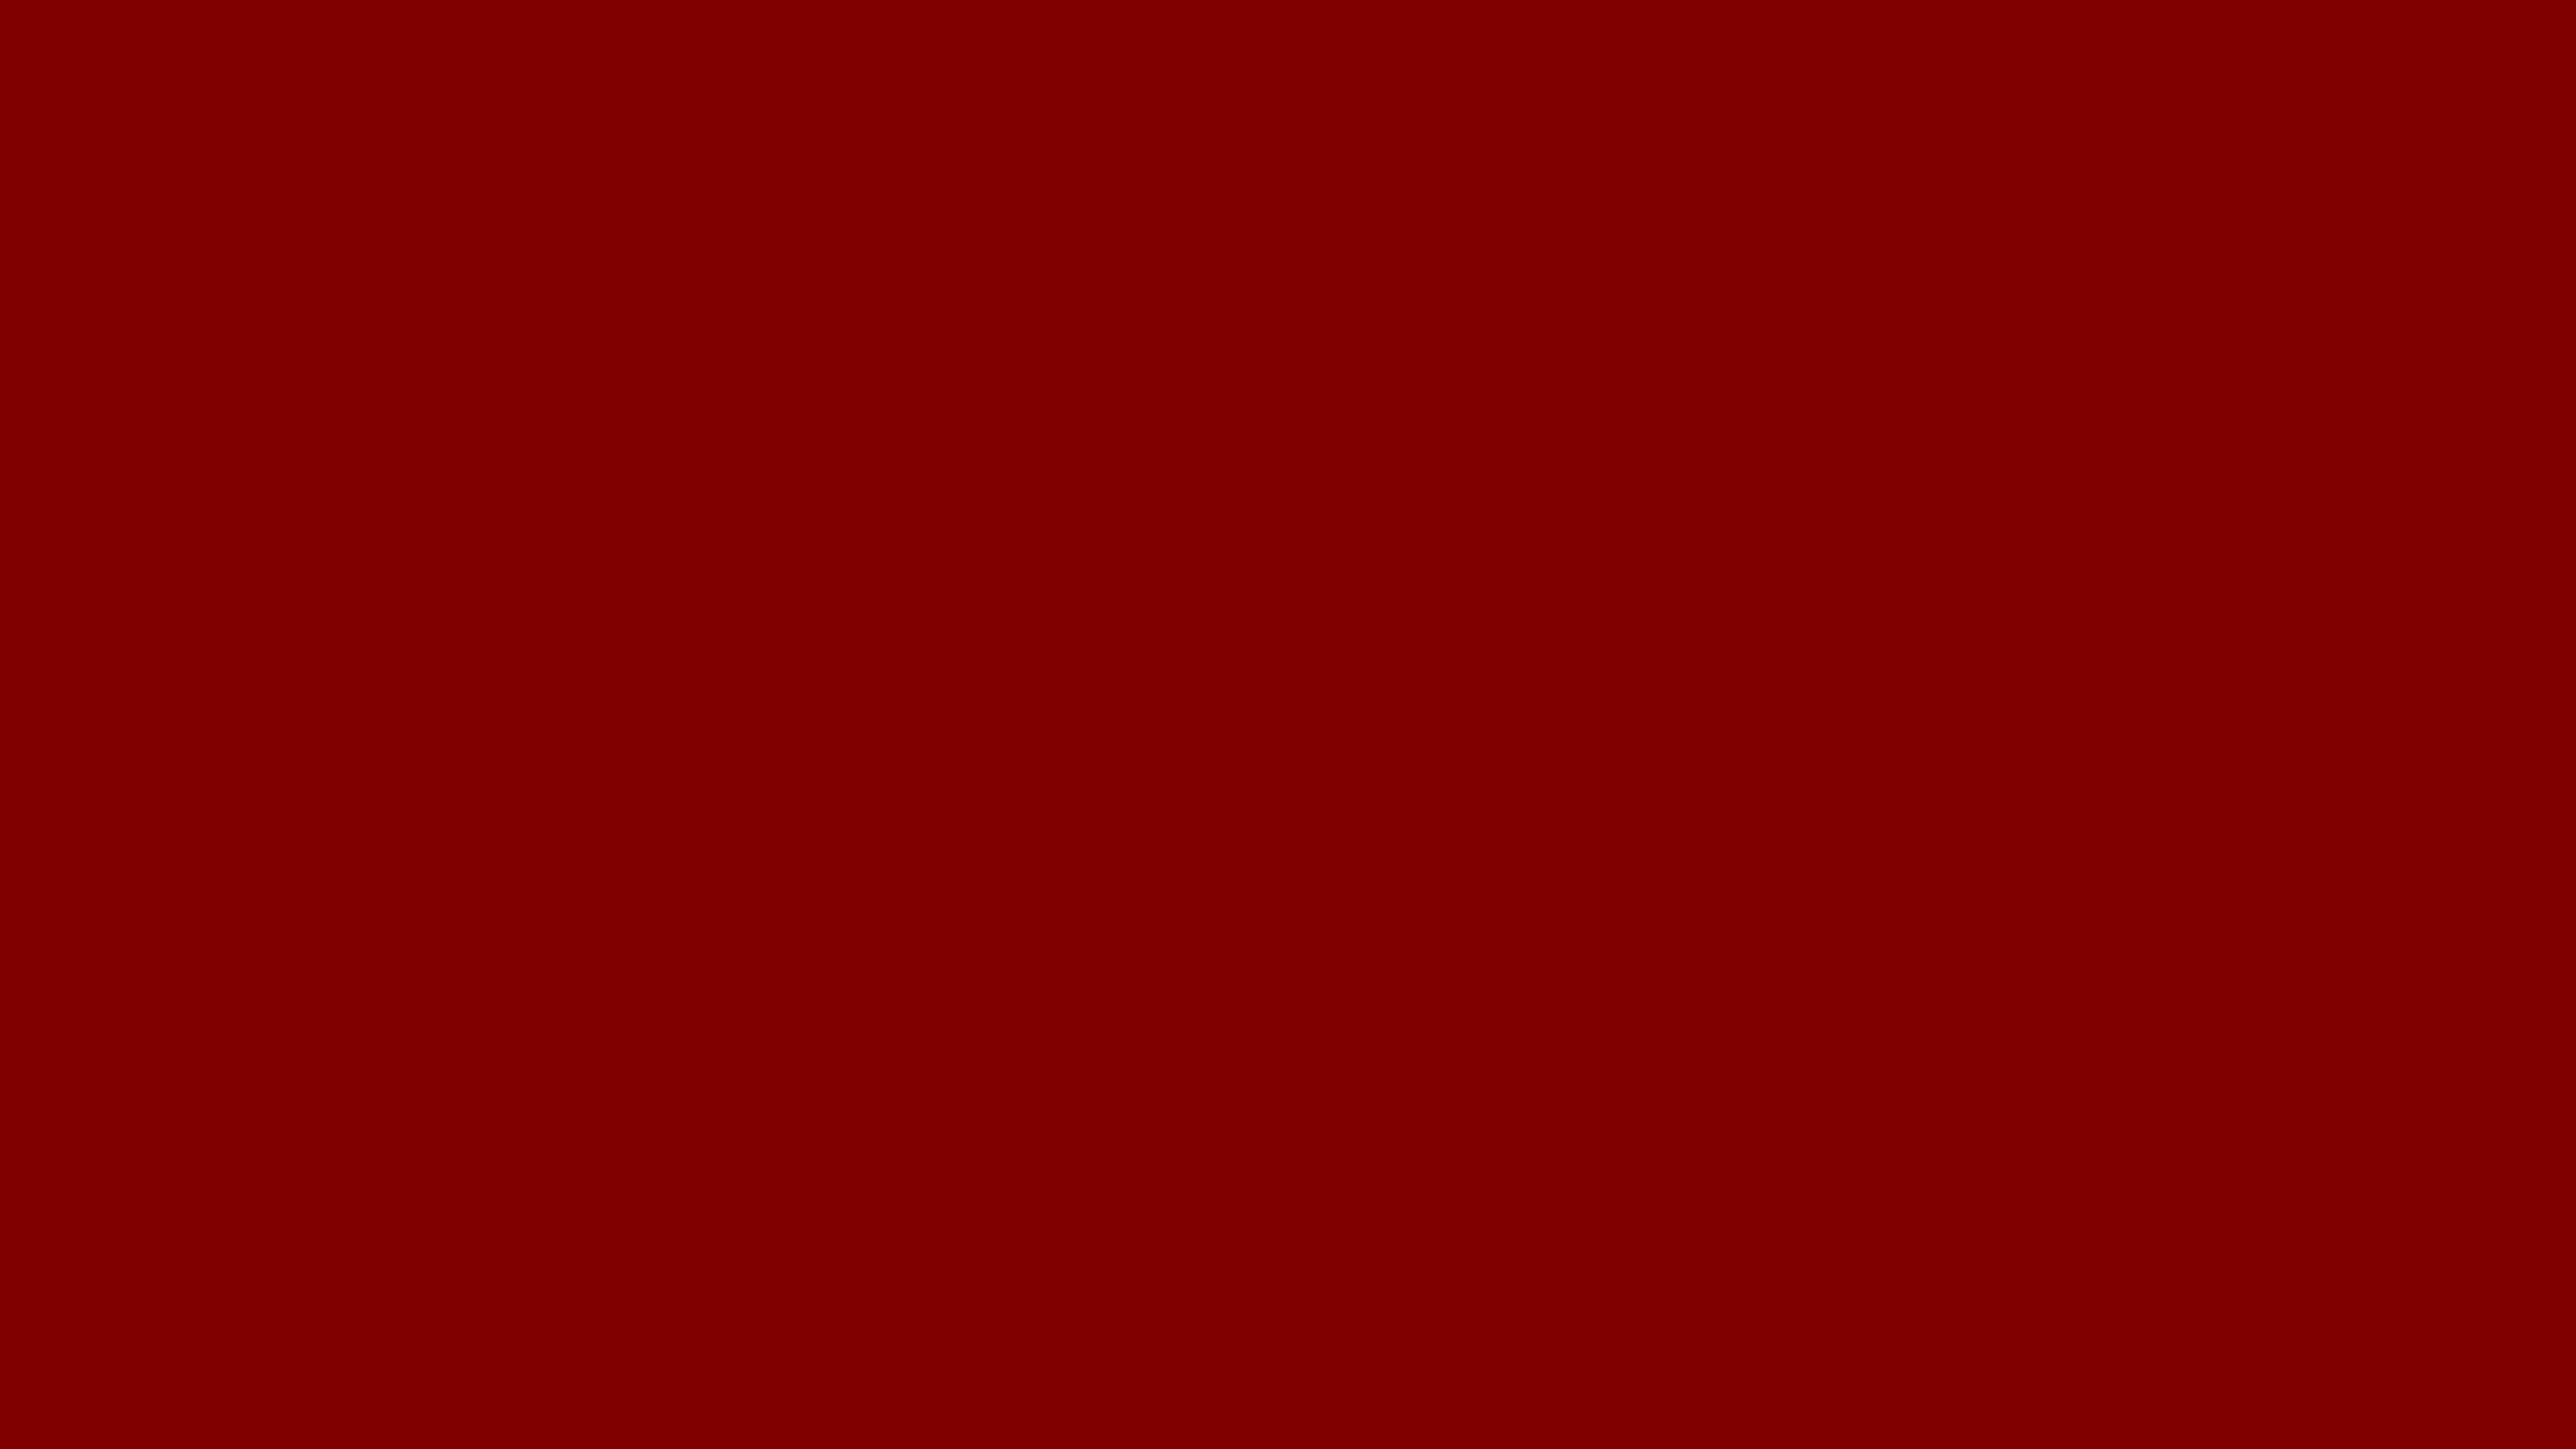 4096x2304 Maroon Web Solid Color Background